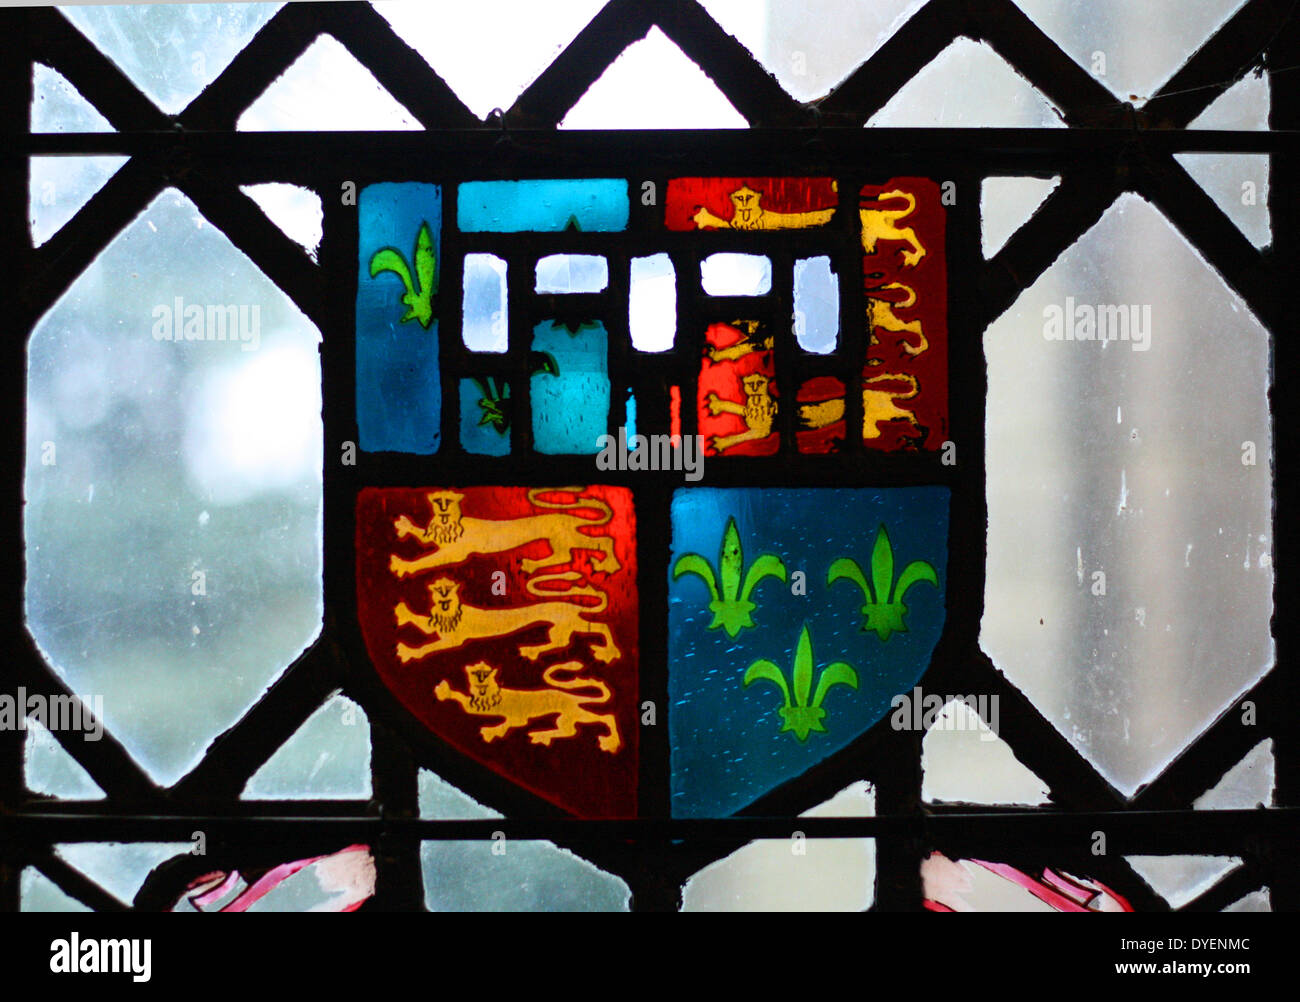 Coats of arms displayed on stained glass windows at Warwick castle - Stock Image